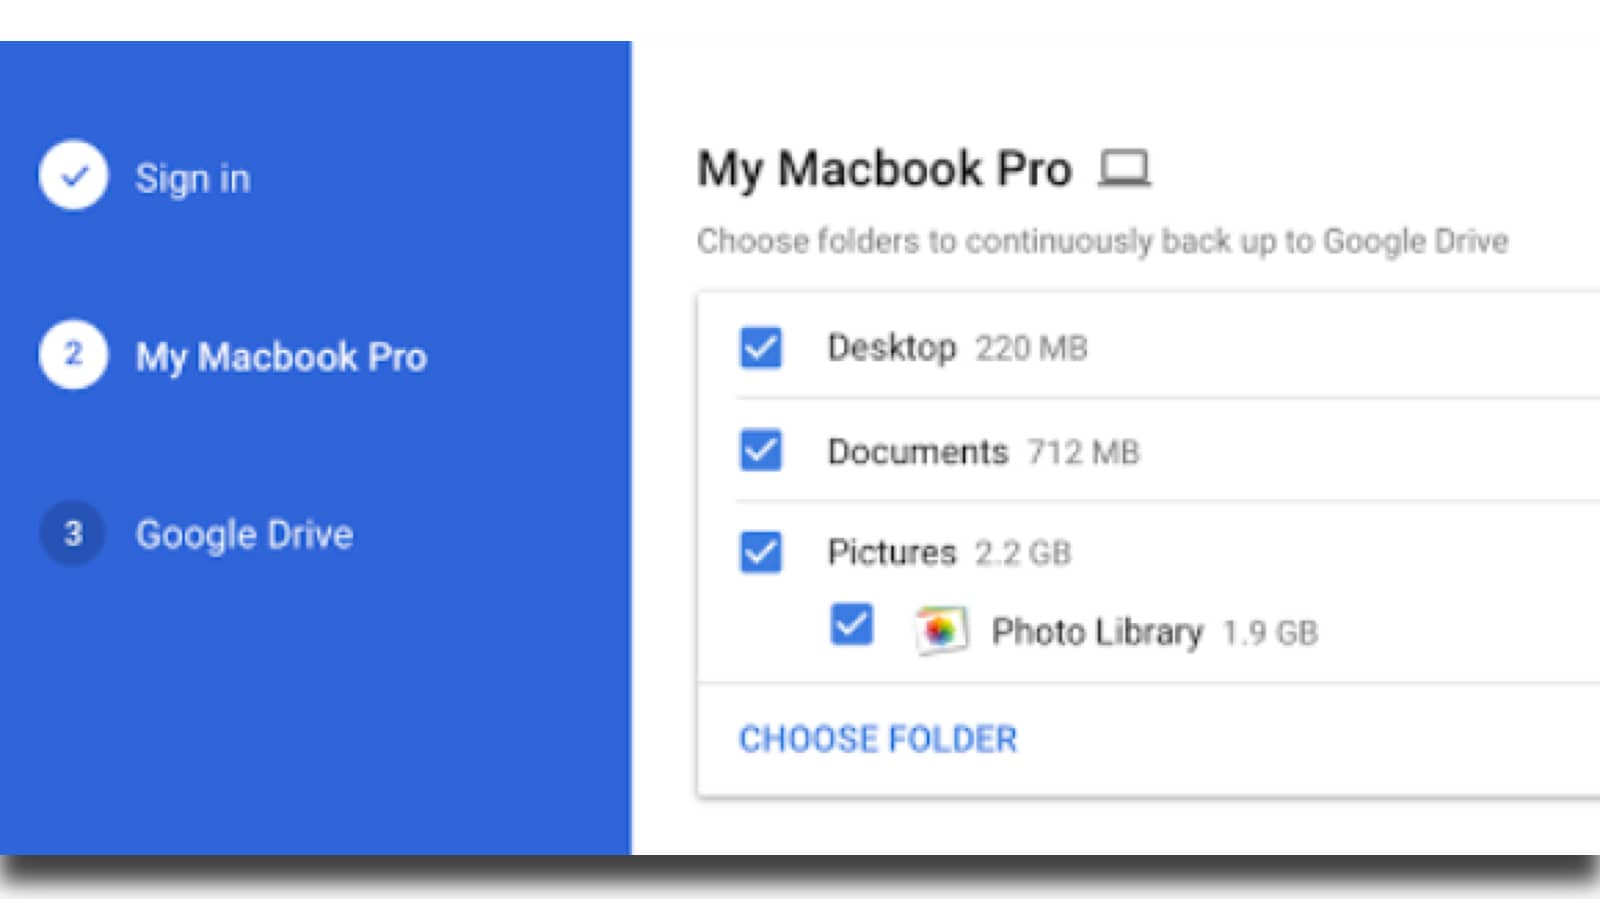 Back up desktop, documents, and photos in Google sync app.